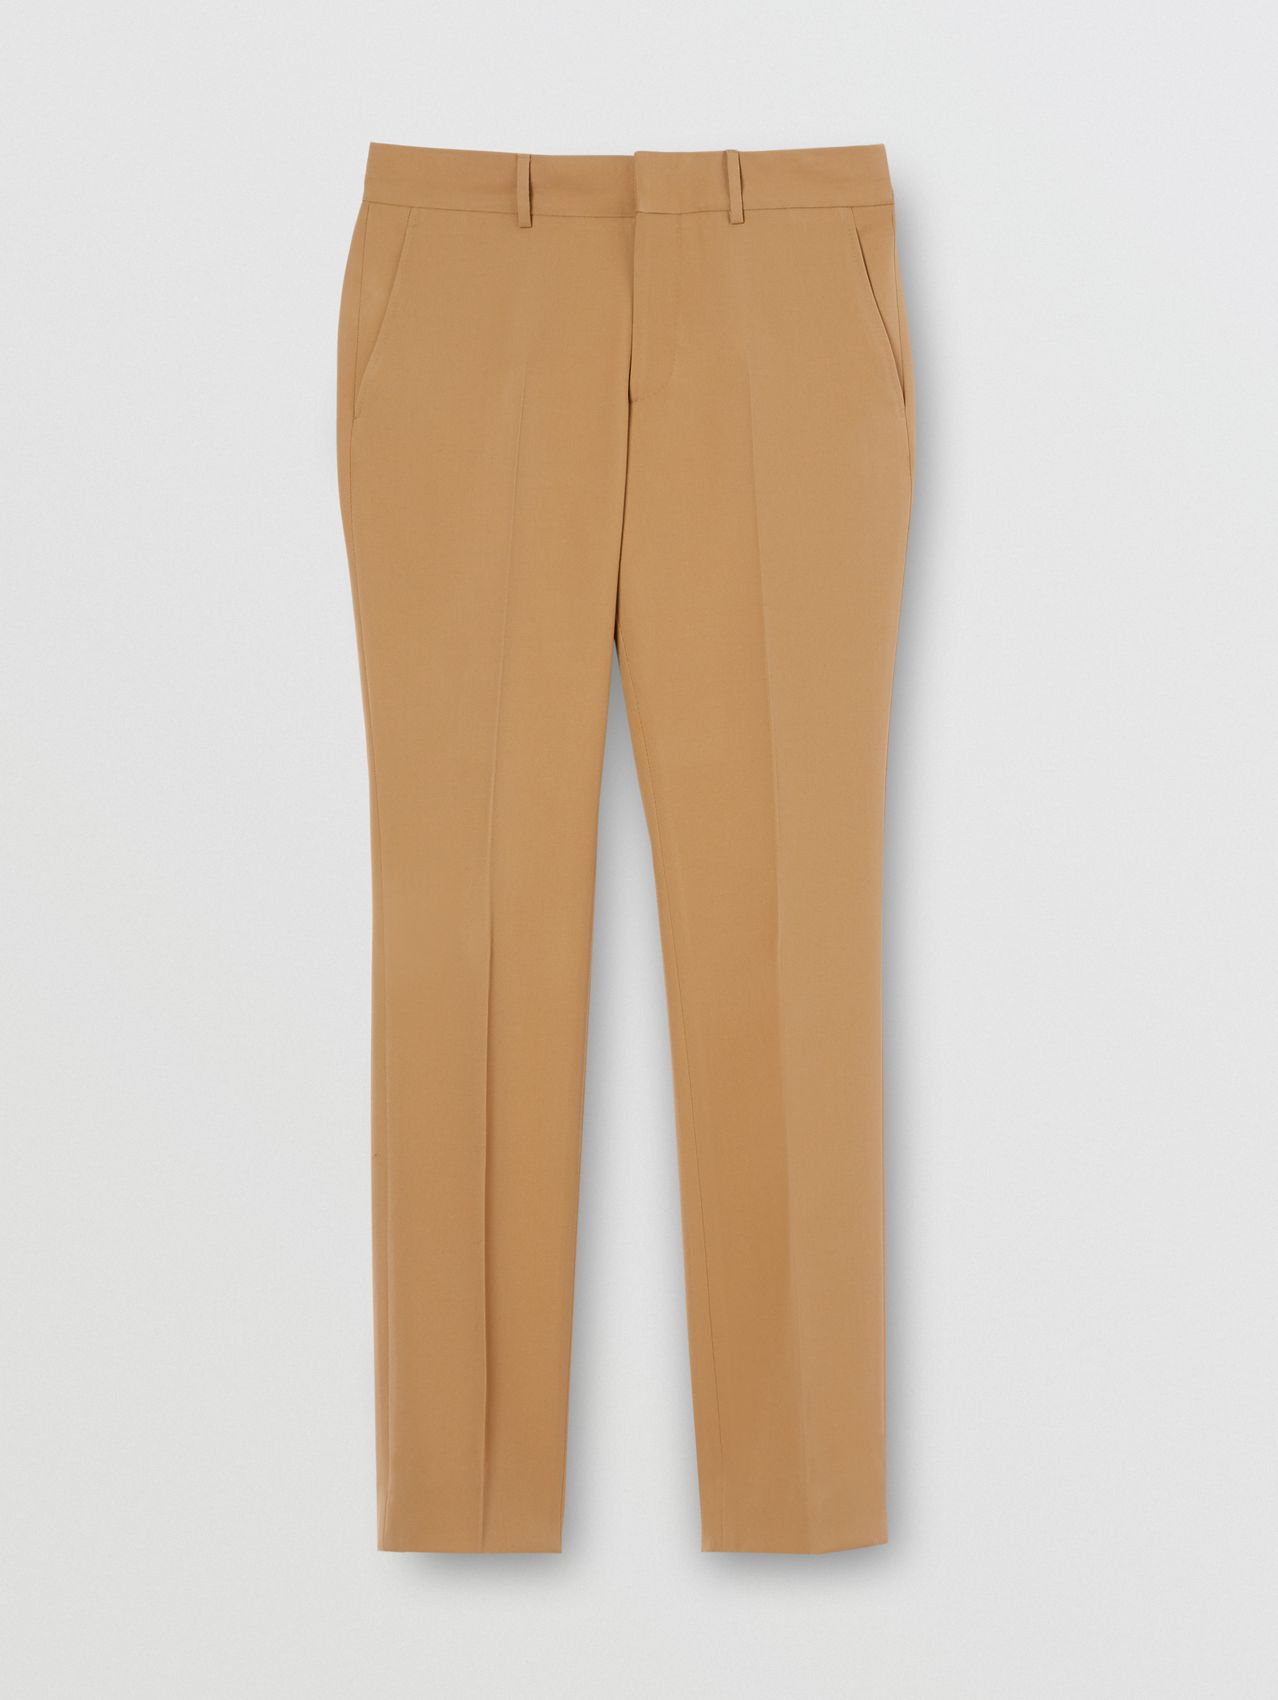 Dry Wool Twill Tailored Trousers in Dark Tan